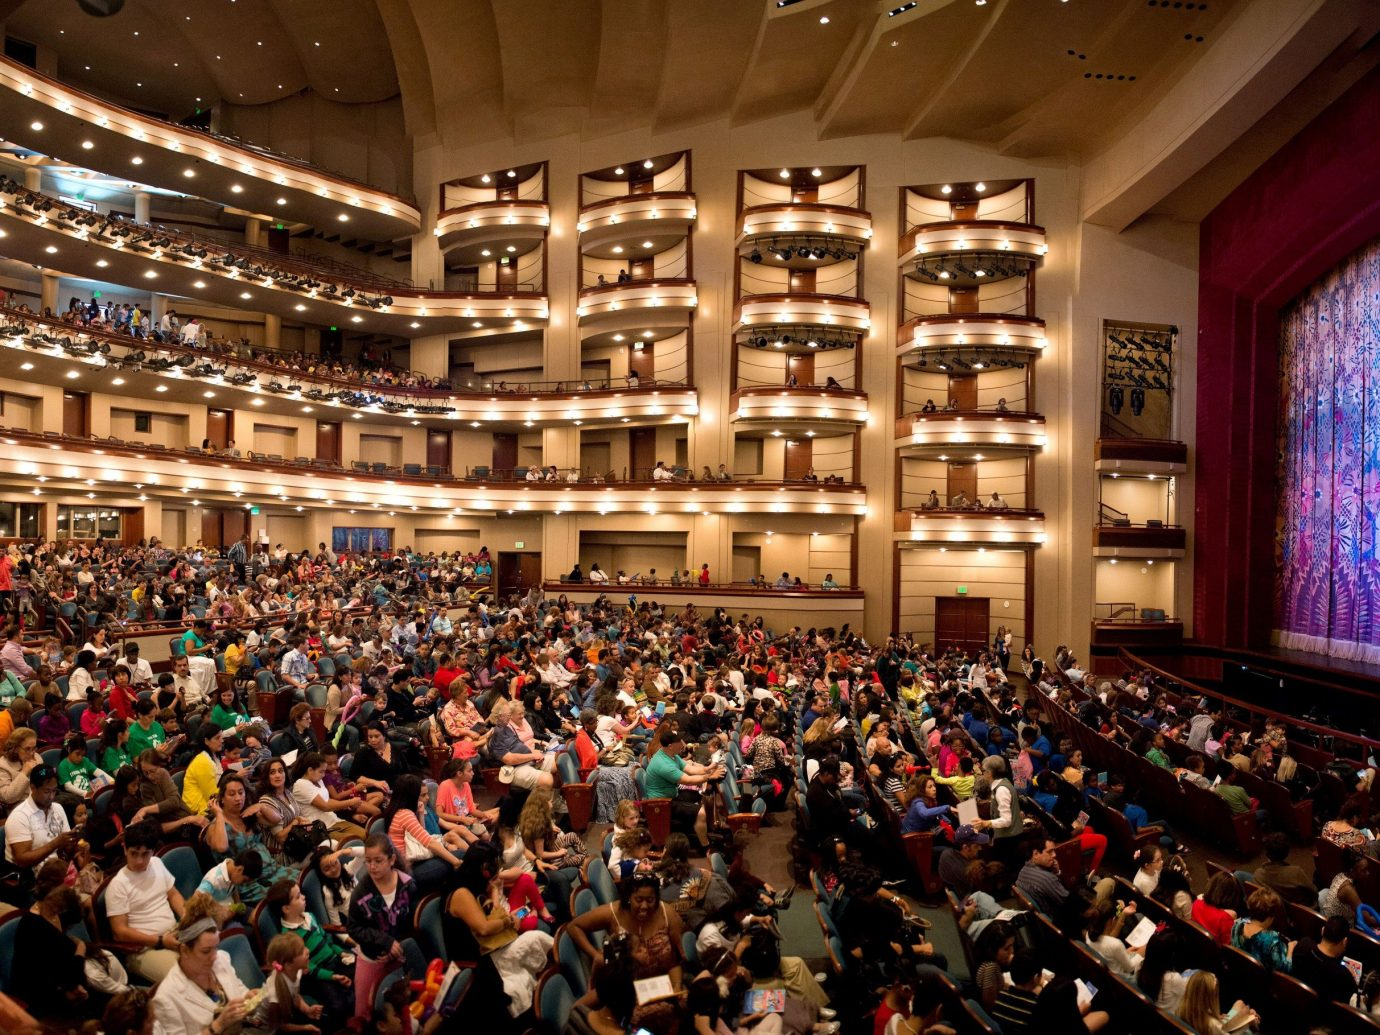 Budget indoor person ceiling crowd audience people auditorium stage musical theatre theatre convention hall